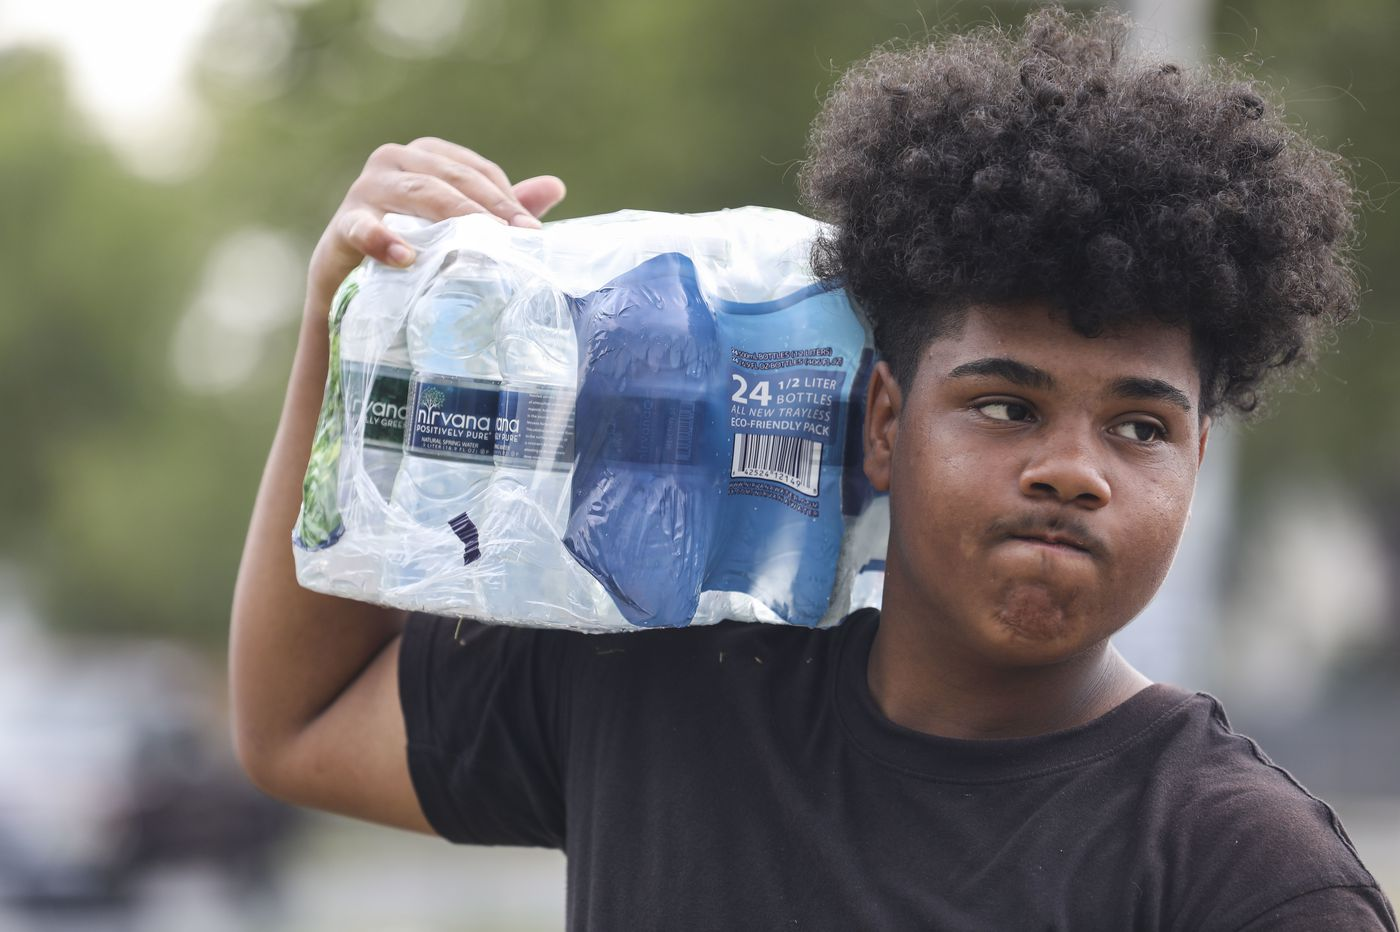 This 16-year-old was robbed of his profits selling bottled water. Camden rallied. | Helen Ubiñas